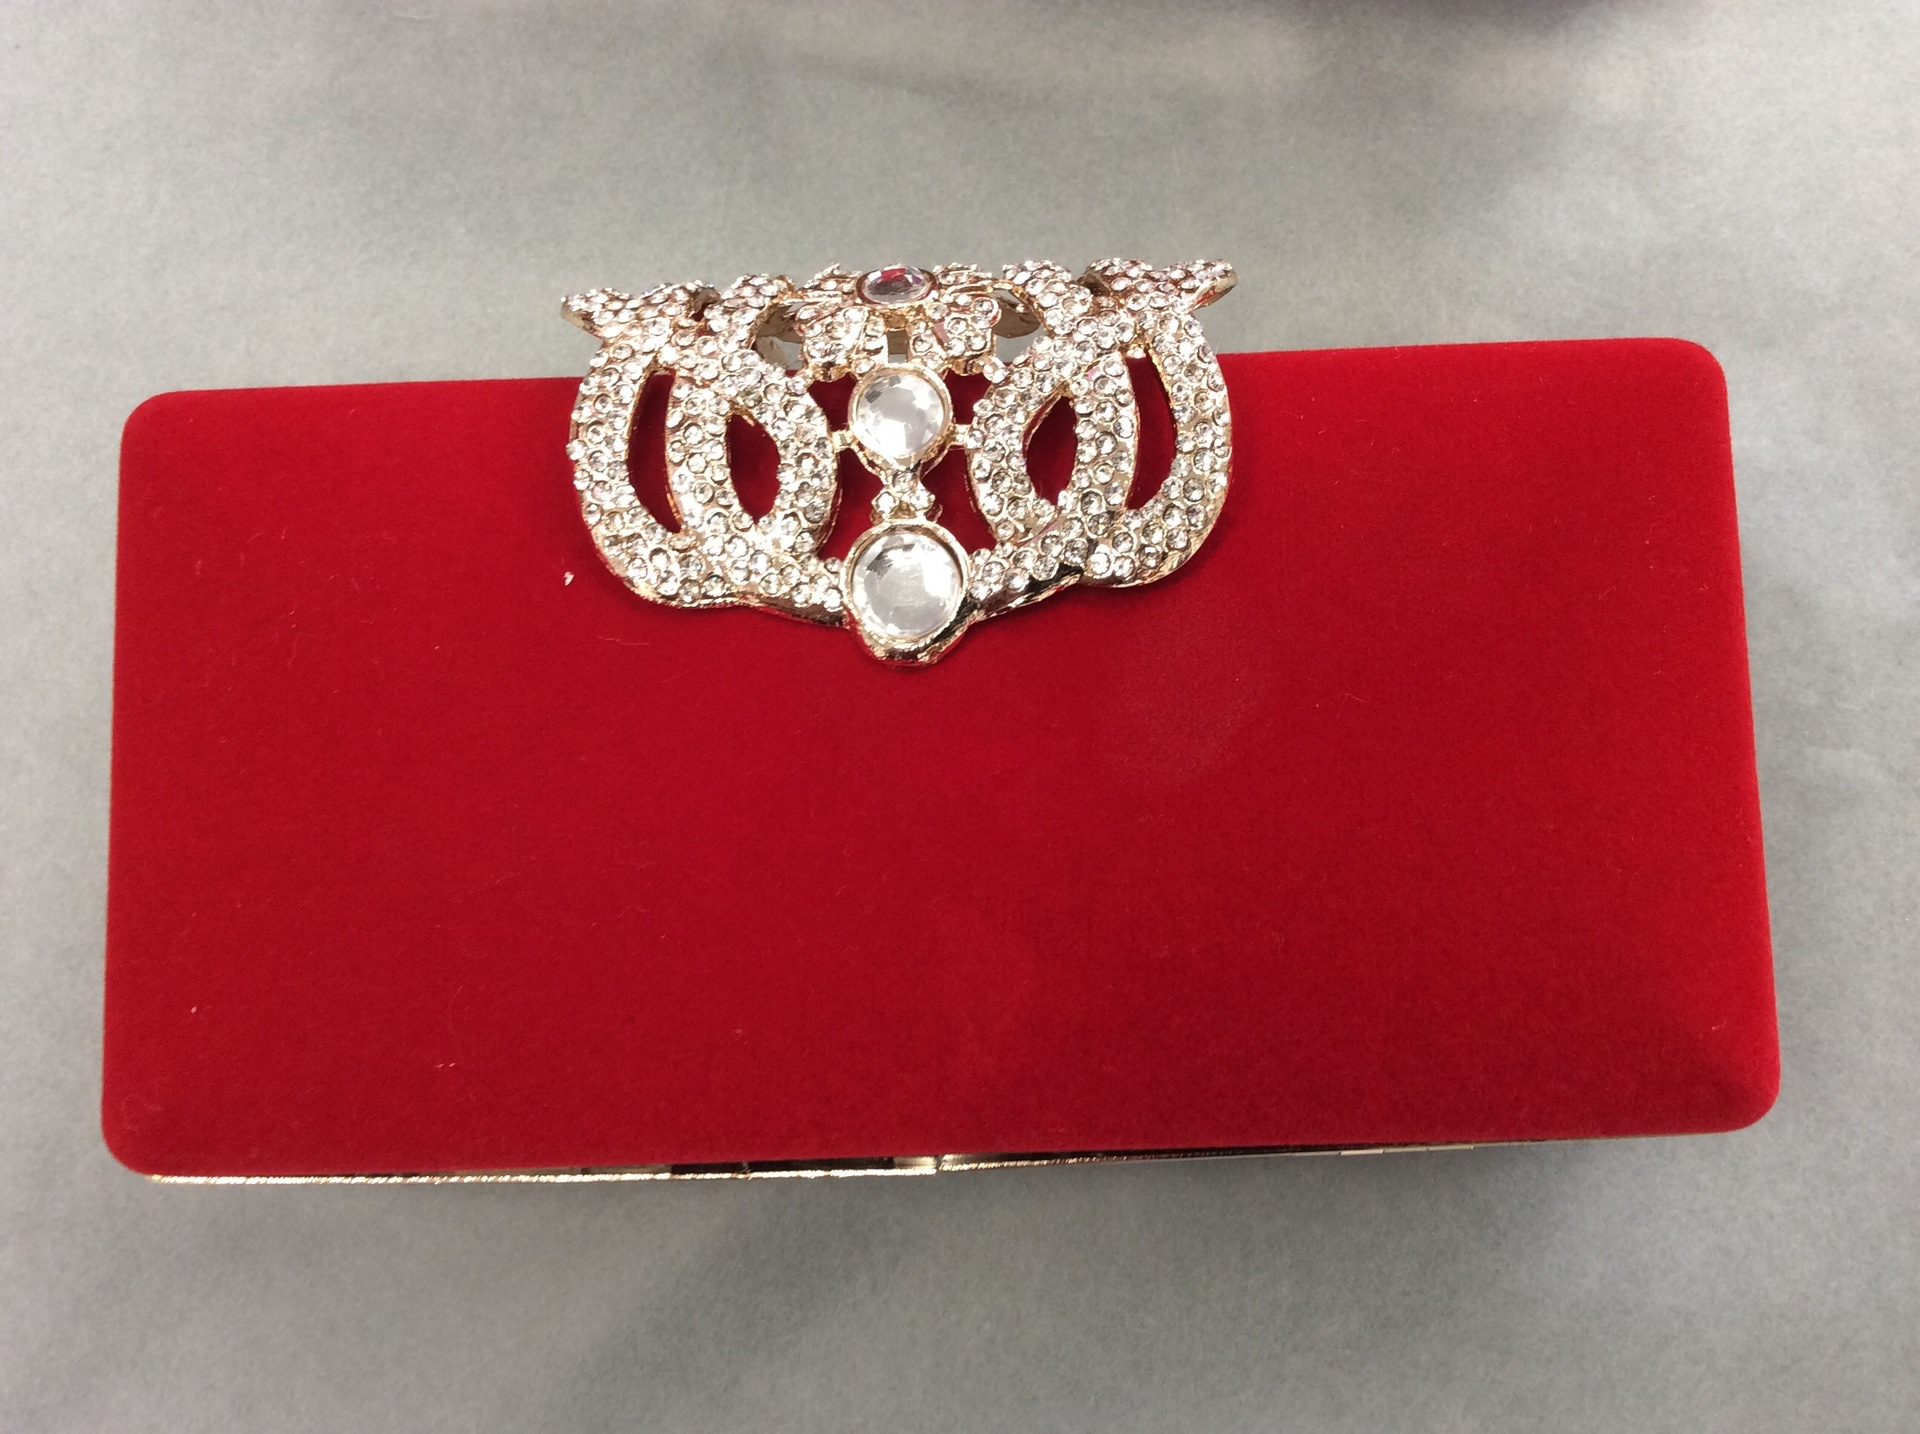 Red/gold clutch bag